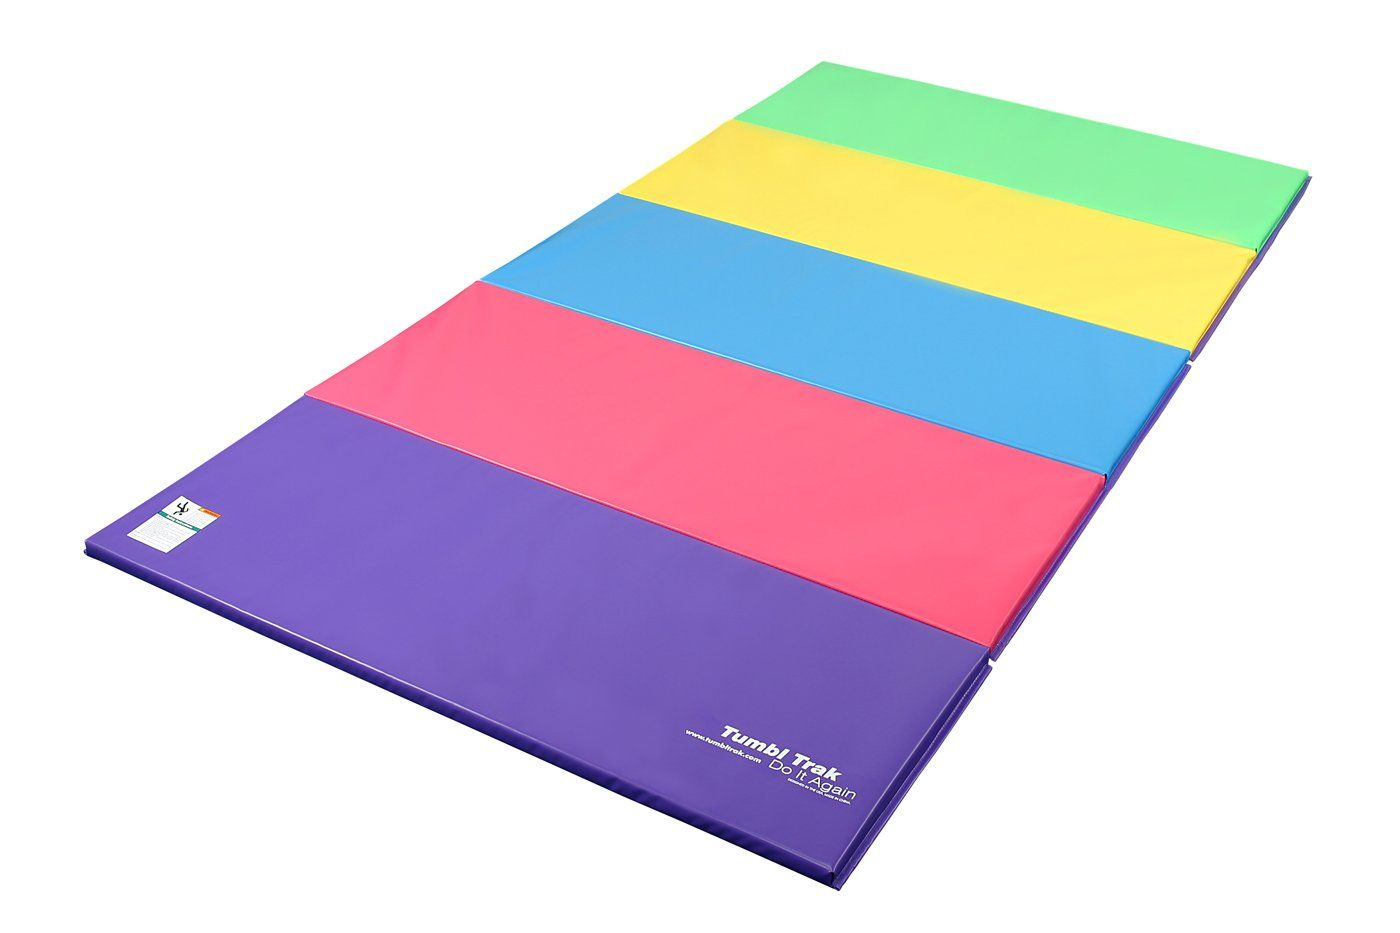 Tumbl Trak Folding Gymnastics Mat Bright Pastel 5 Ft X 10 Ft X 2 In Tumbl Trak Tumbling Mats Are The Highest Quality Gymnastics Mats Tumble Mats Gymnastics